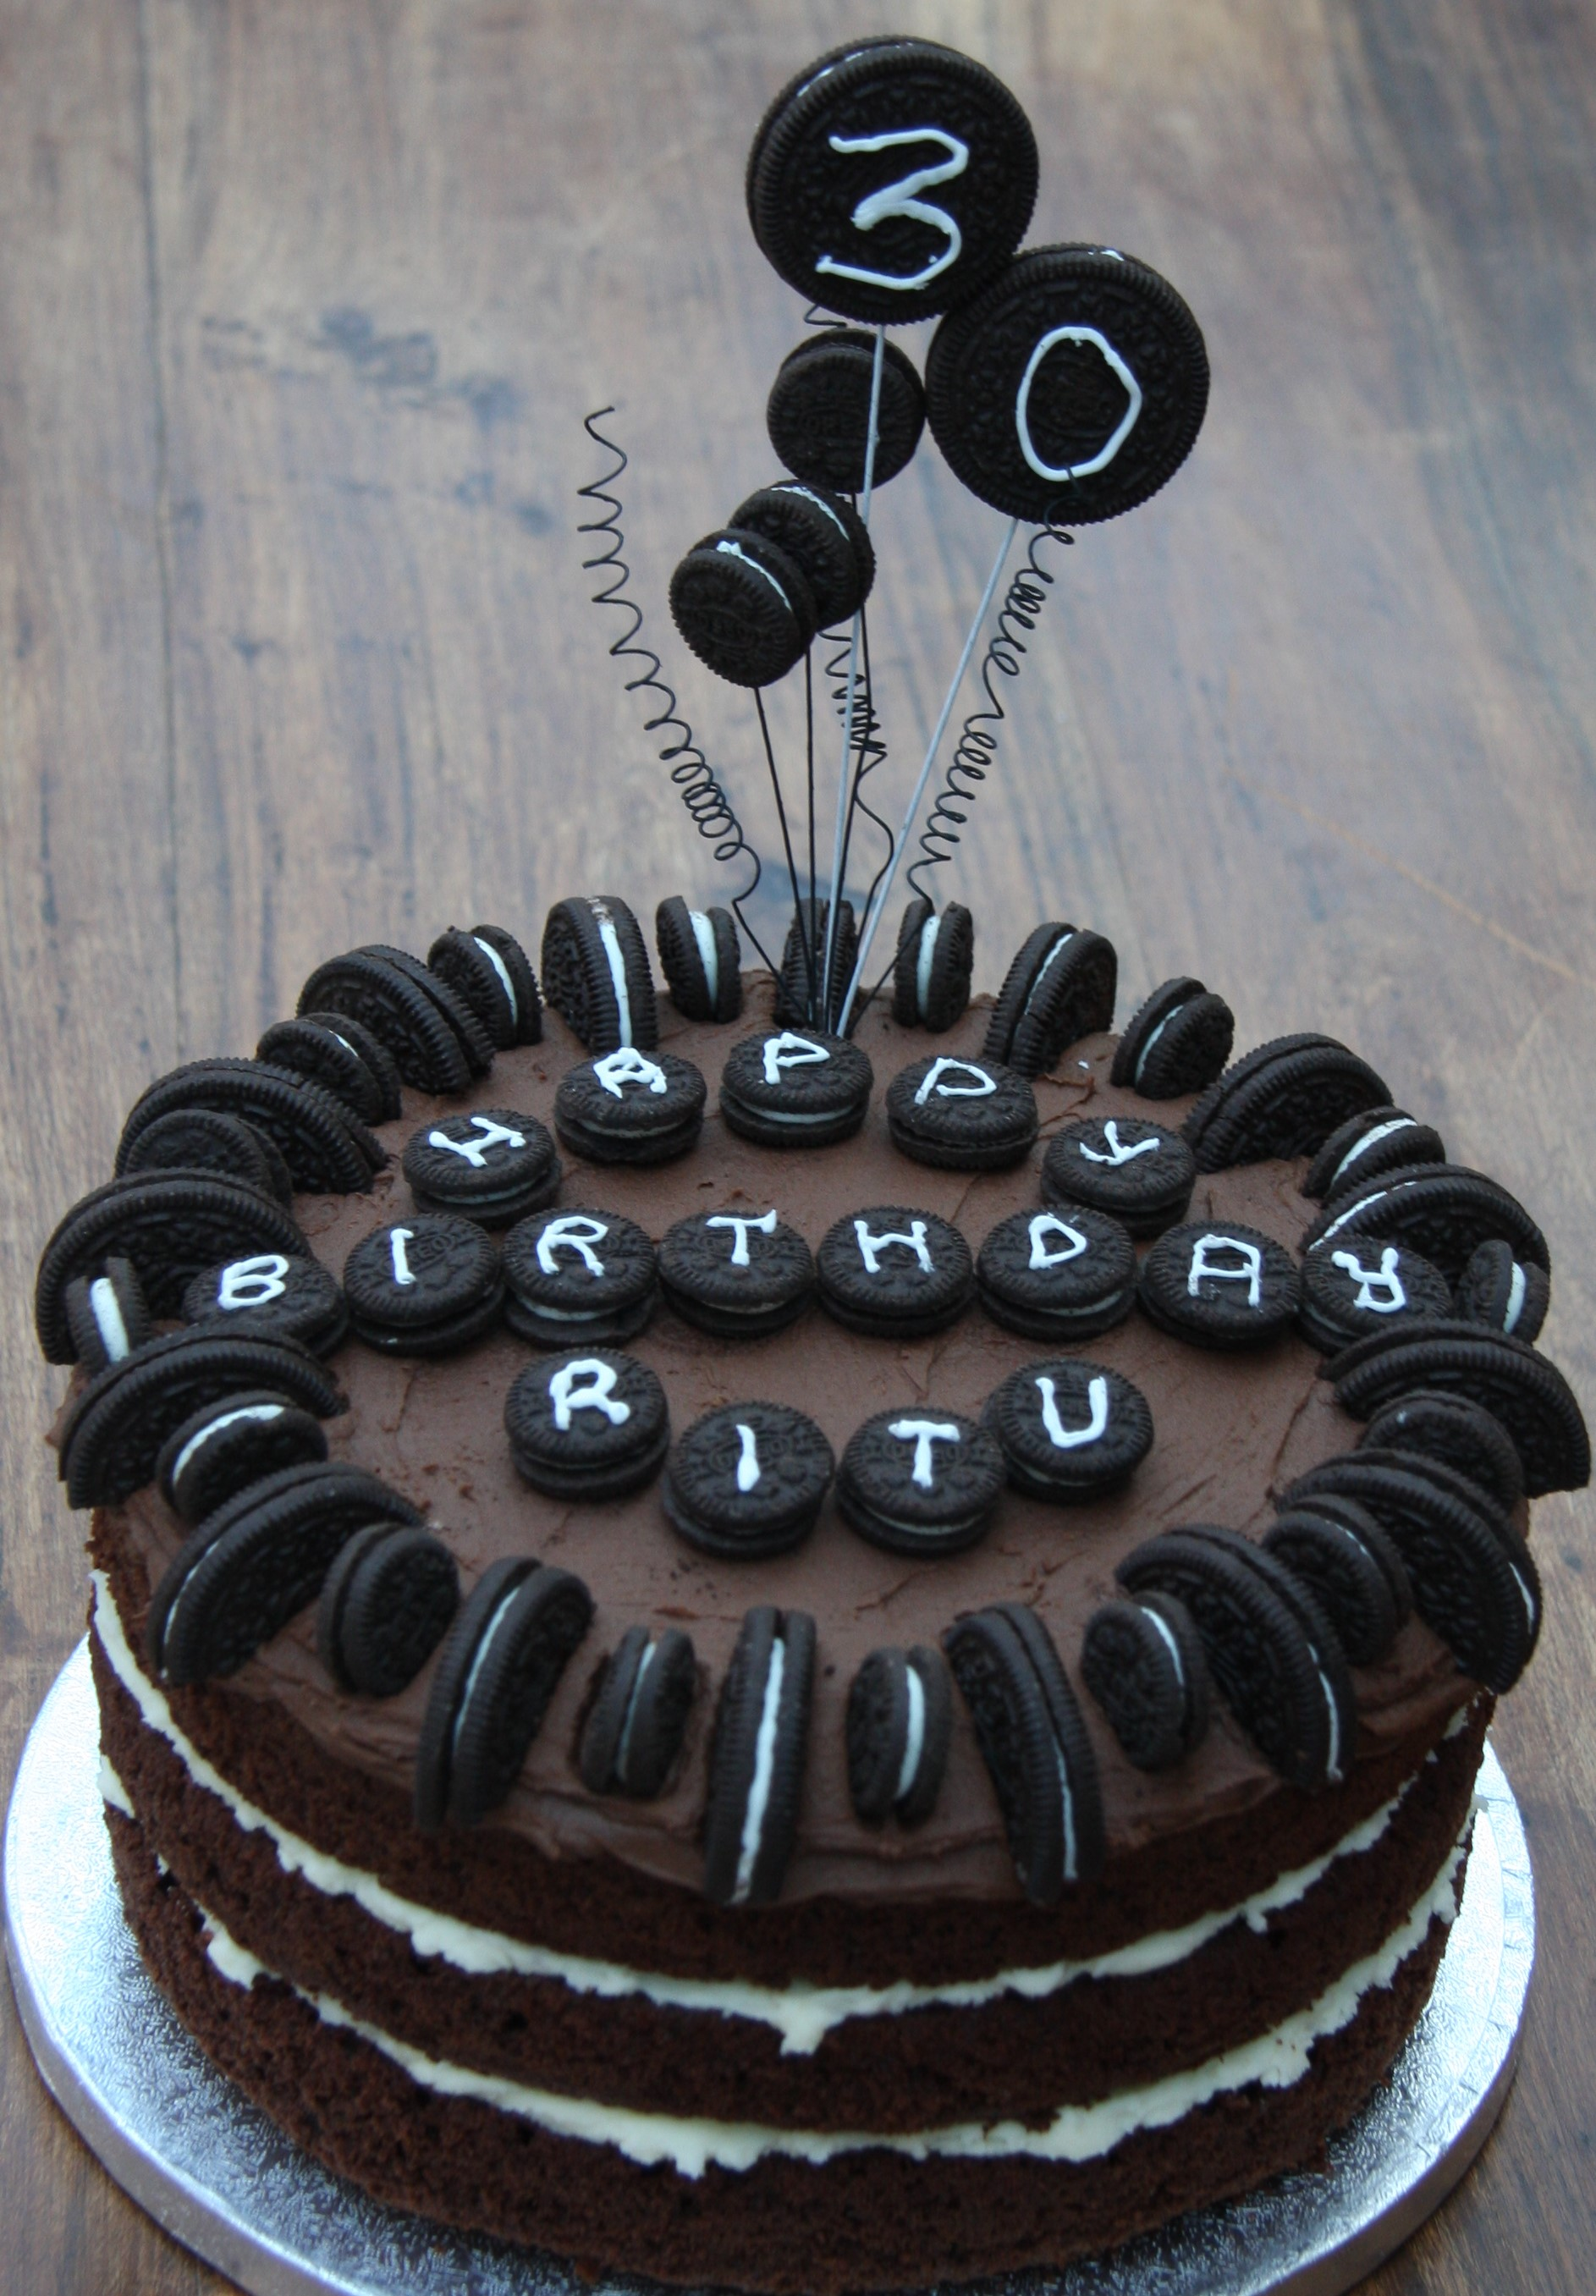 Images Of Birthday Cake With Name Ritu : More Birthday Cake Ideas lovinghomemade